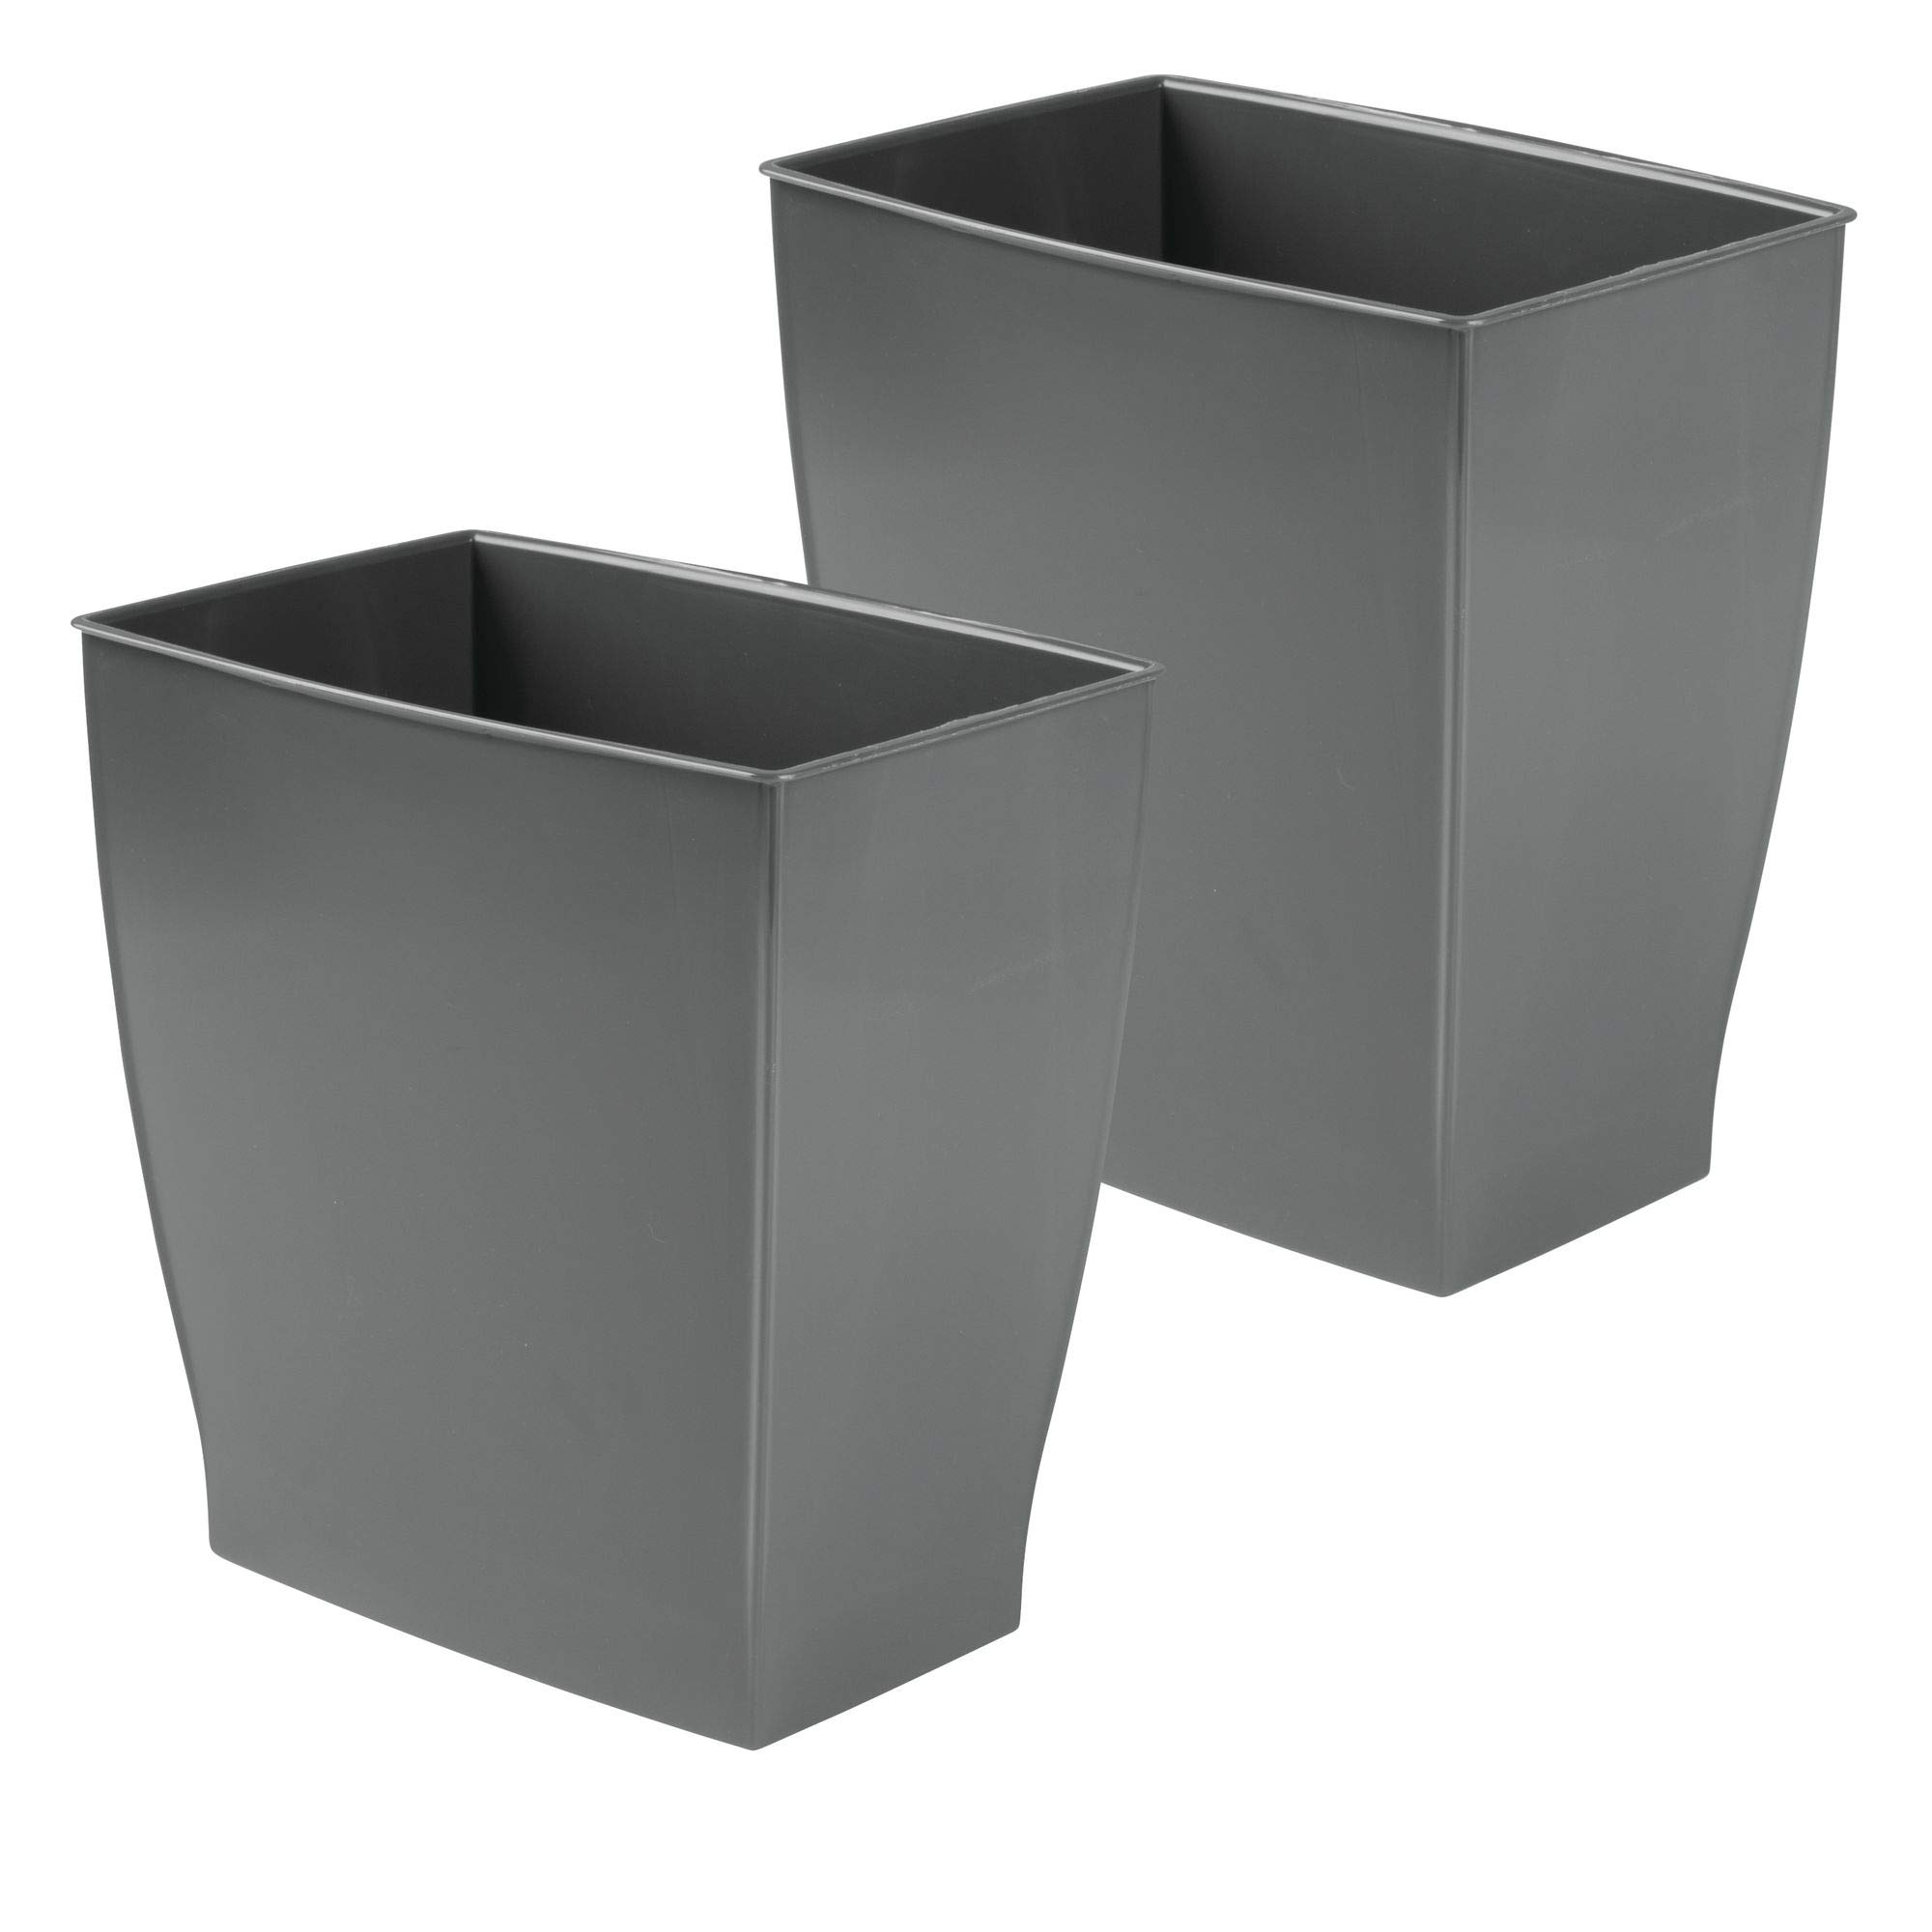 mDesign Rectangular Trash Can Wastebasket, Small Garbage Container Bin for Bathrooms, Powder Rooms, Kitchens, Home Offices - 2 Pack, Shatter-Resistant Plastic, Slate Gray